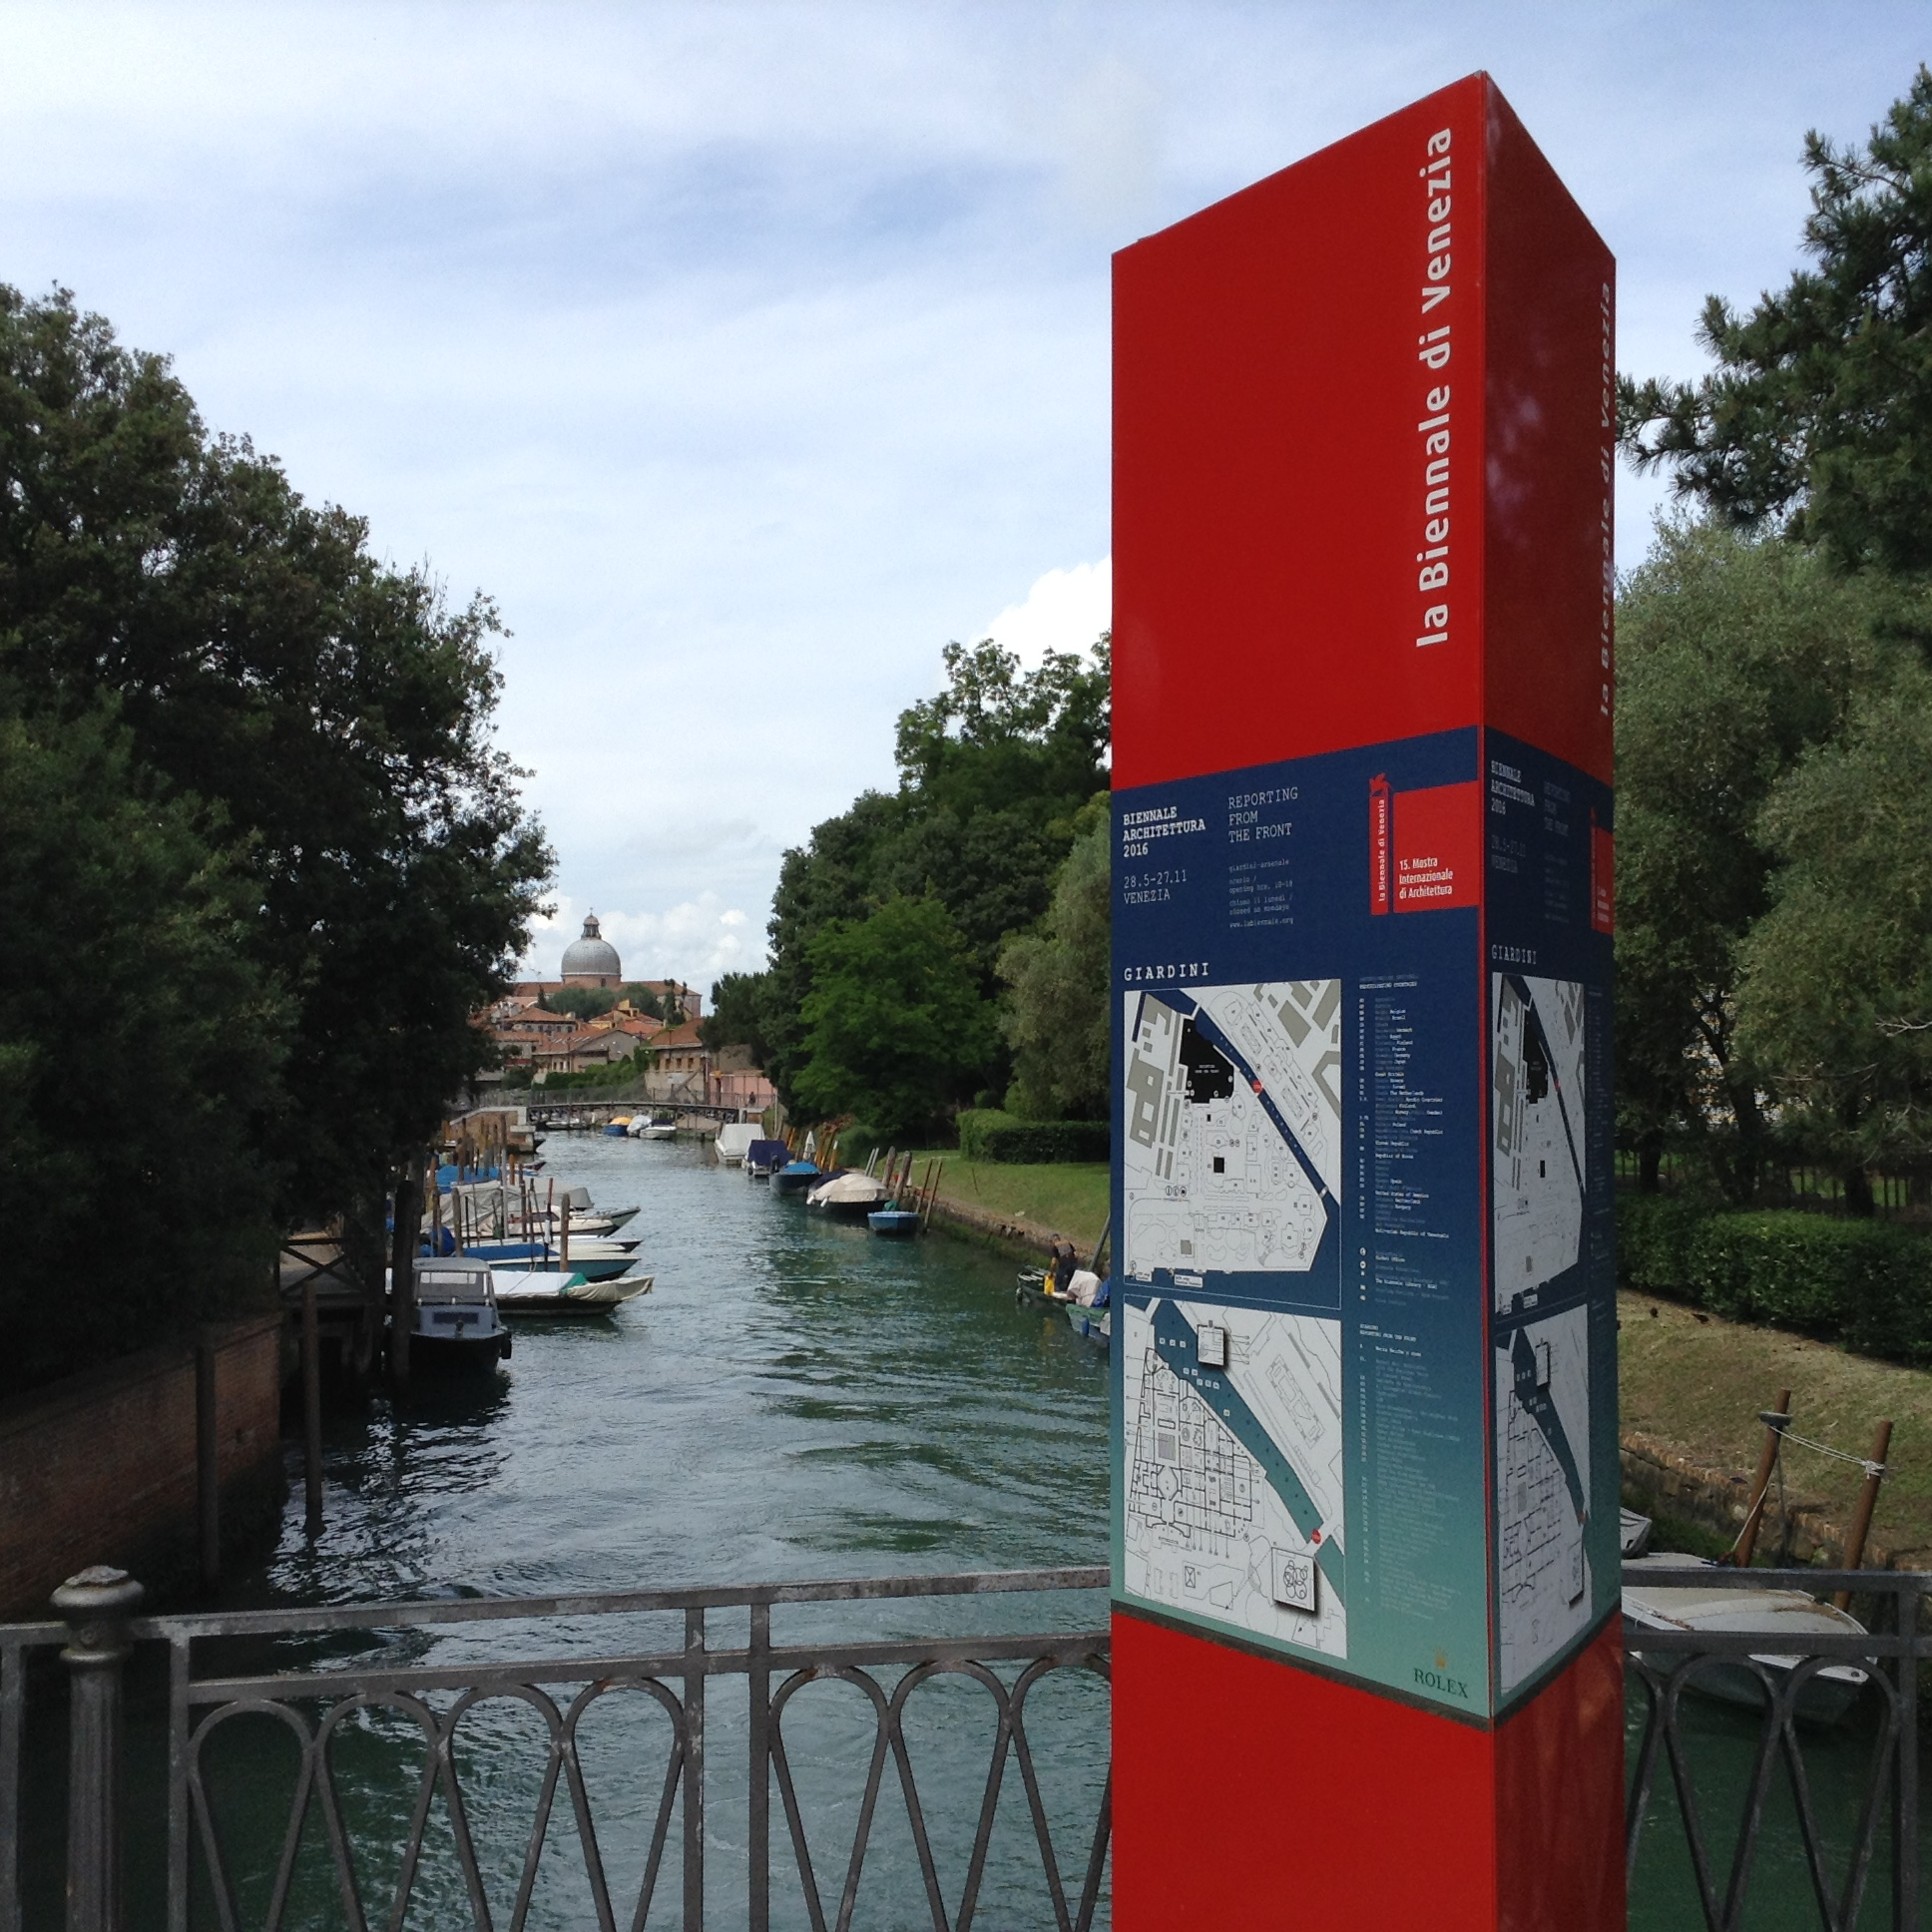 Impressions of the bienniale 2016